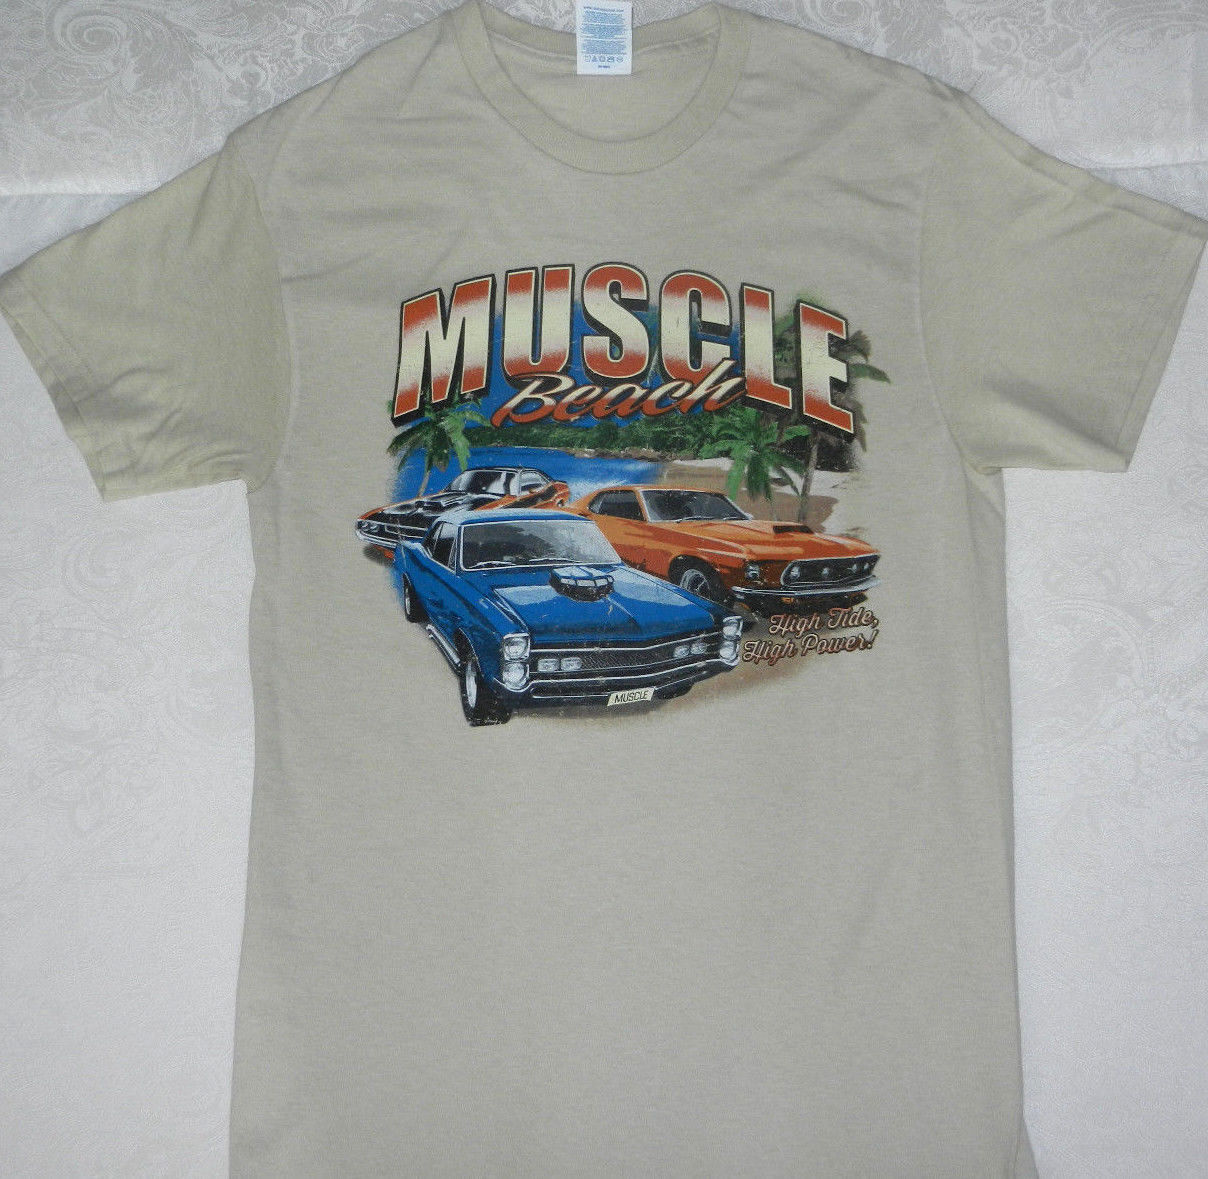 "Primary image for MUSCLE CAR T SHIRT "" MUSCLE BEACH HIGH TIDE HIGH POWER """